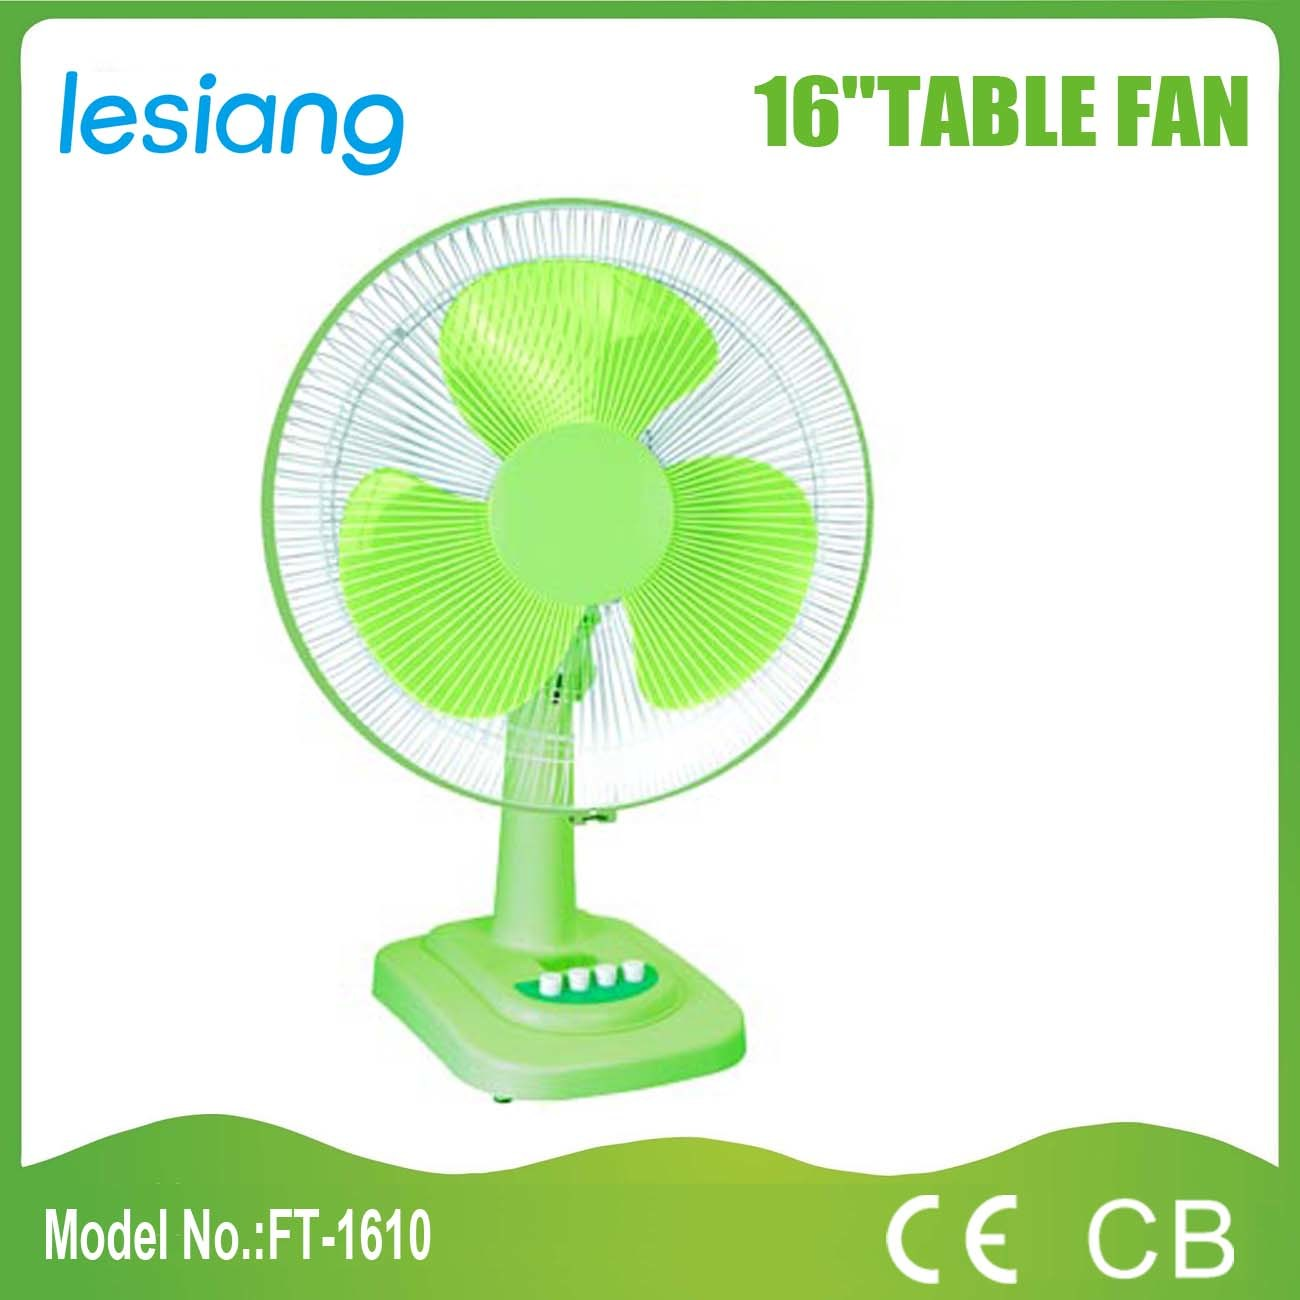 Table Fan Foshan Lesiang Electrical Appliances Co Ltd Page 1 Diagram All Picture